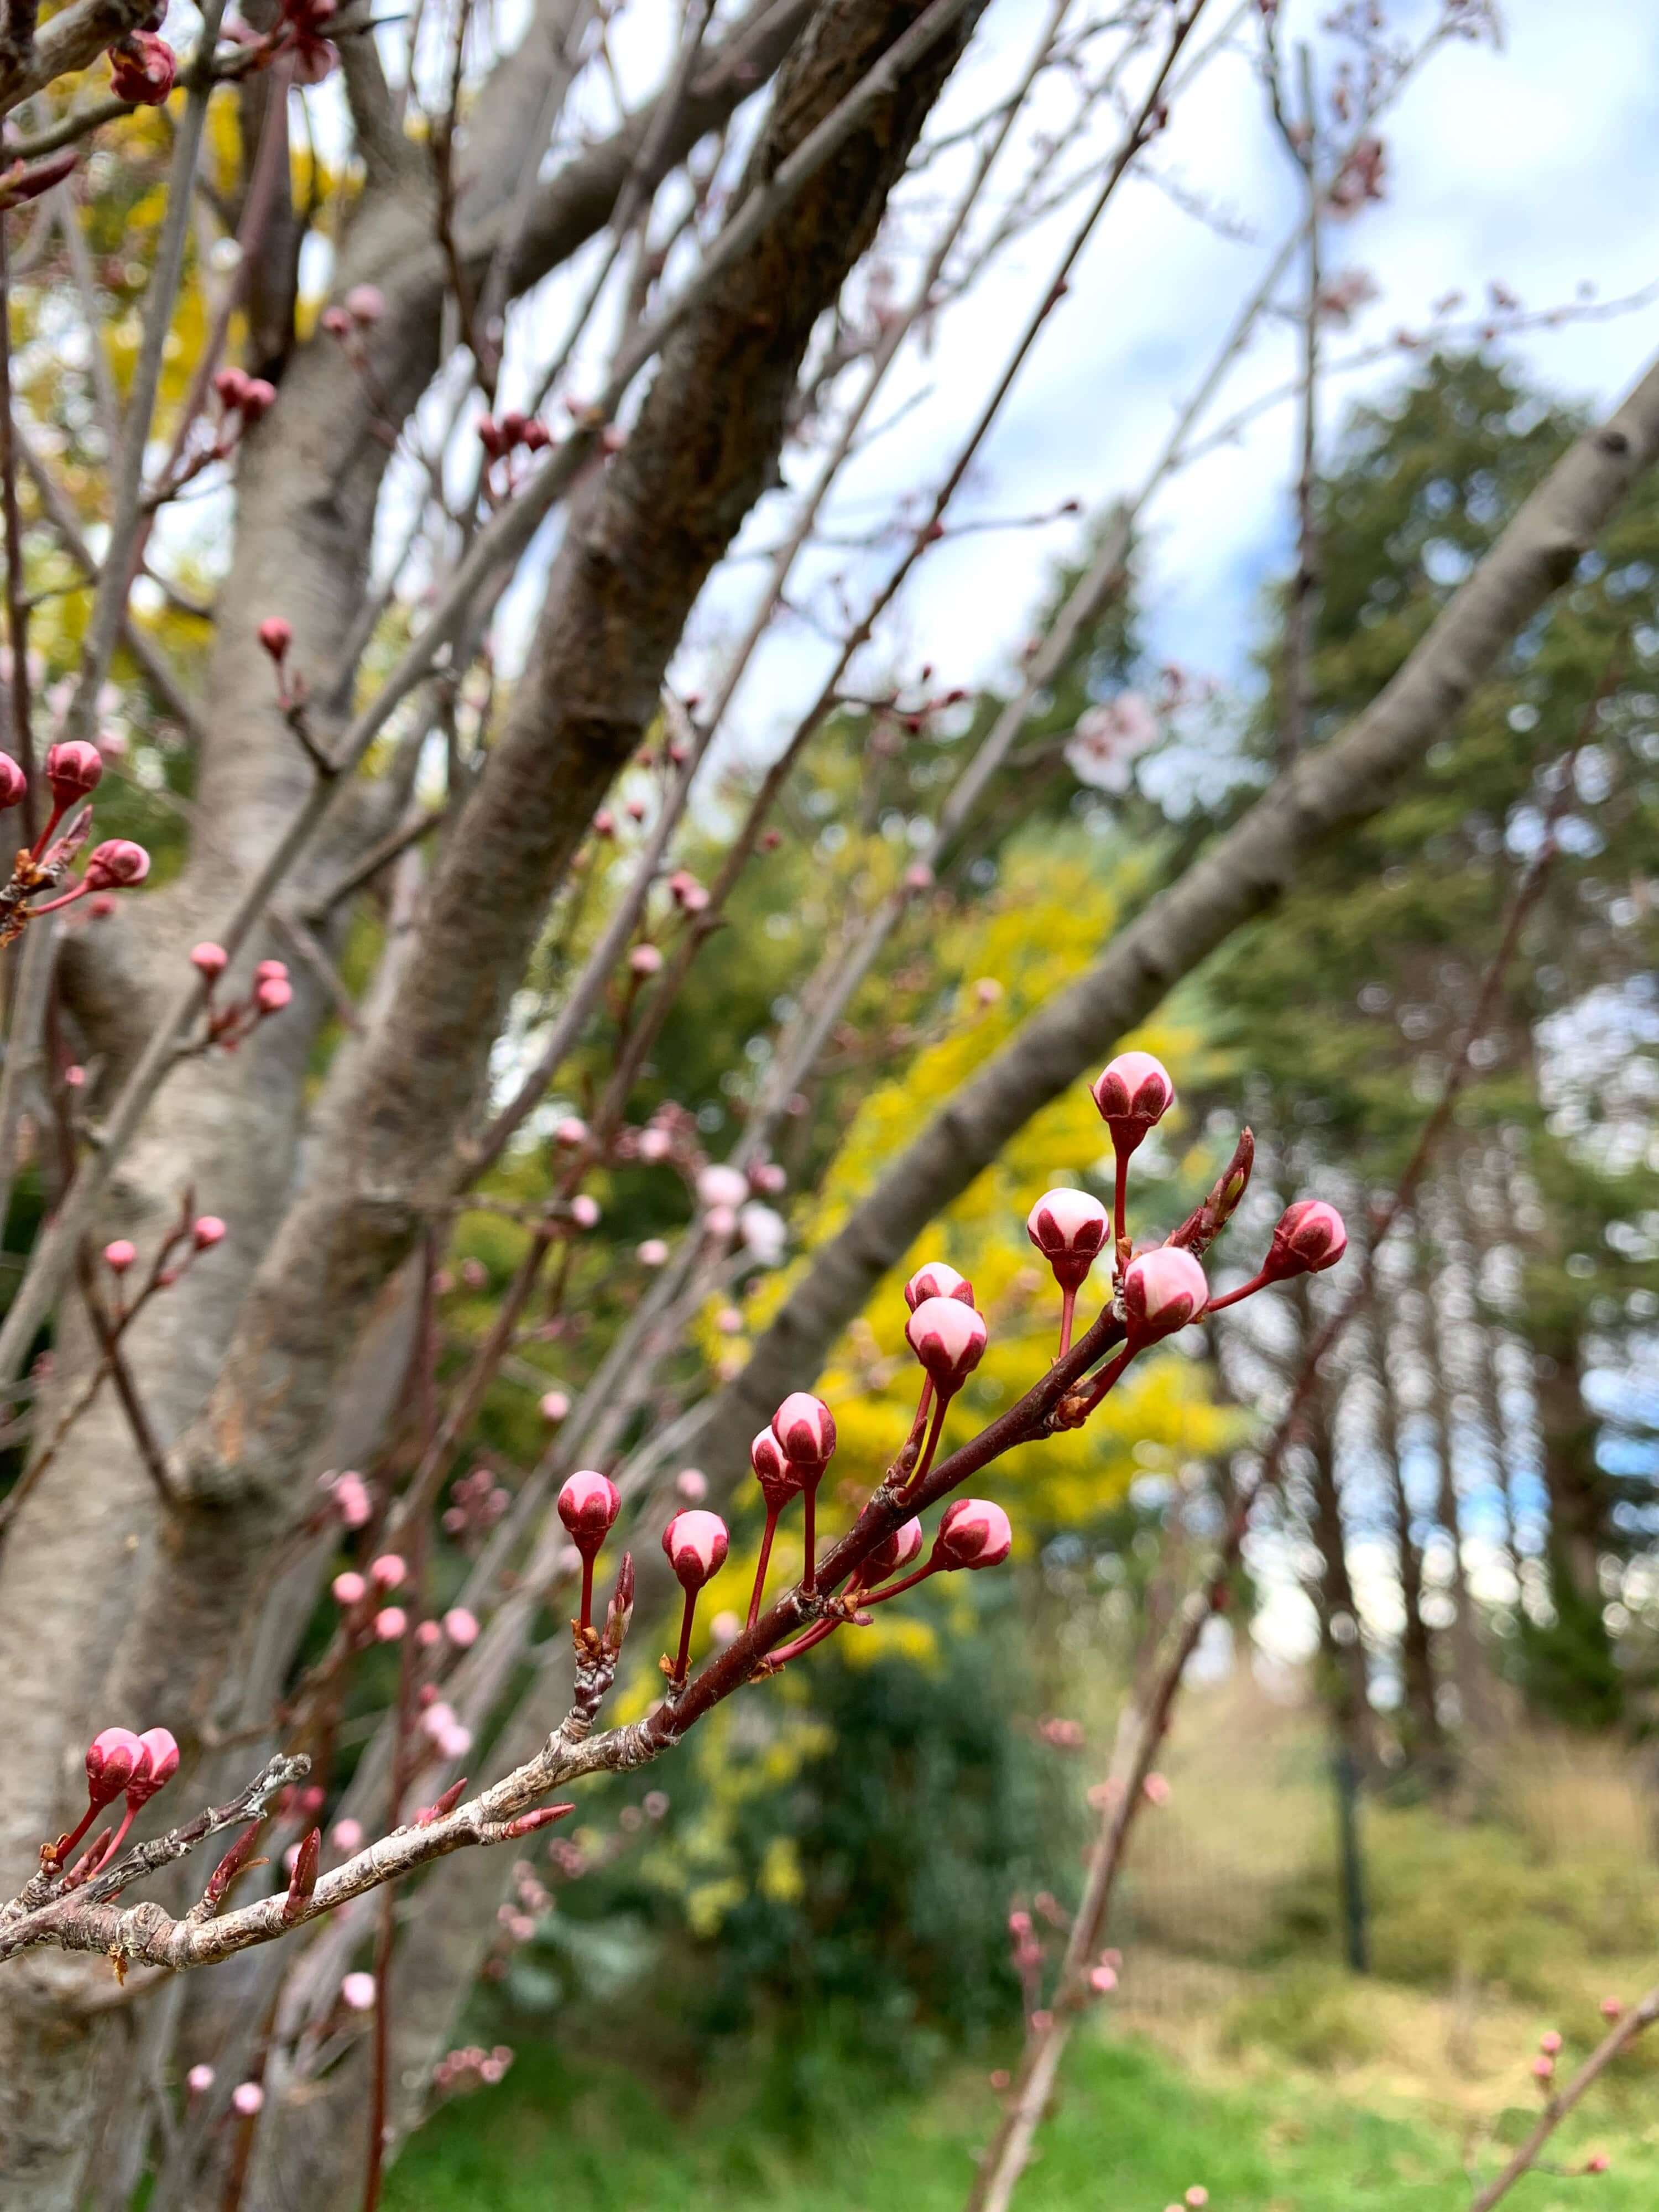 pink blossom buds with a blurry yellow wattle tree in the background